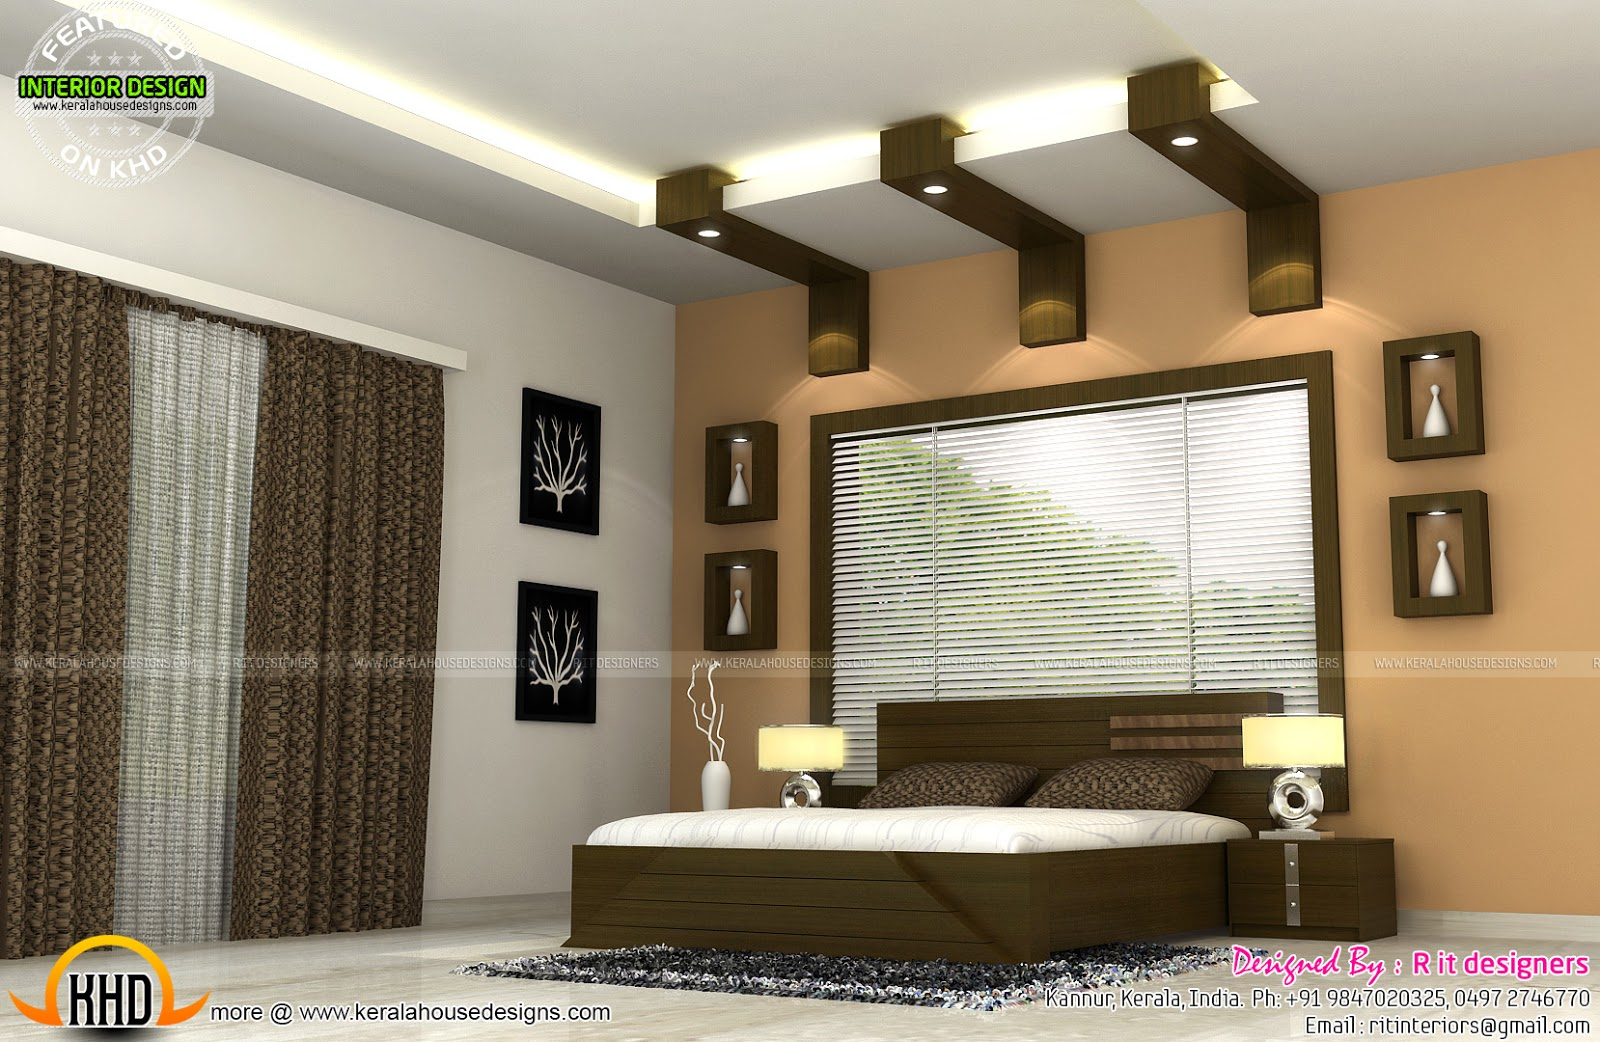 Interiors of bedrooms and kitchen kerala home design and for House design interior decorating